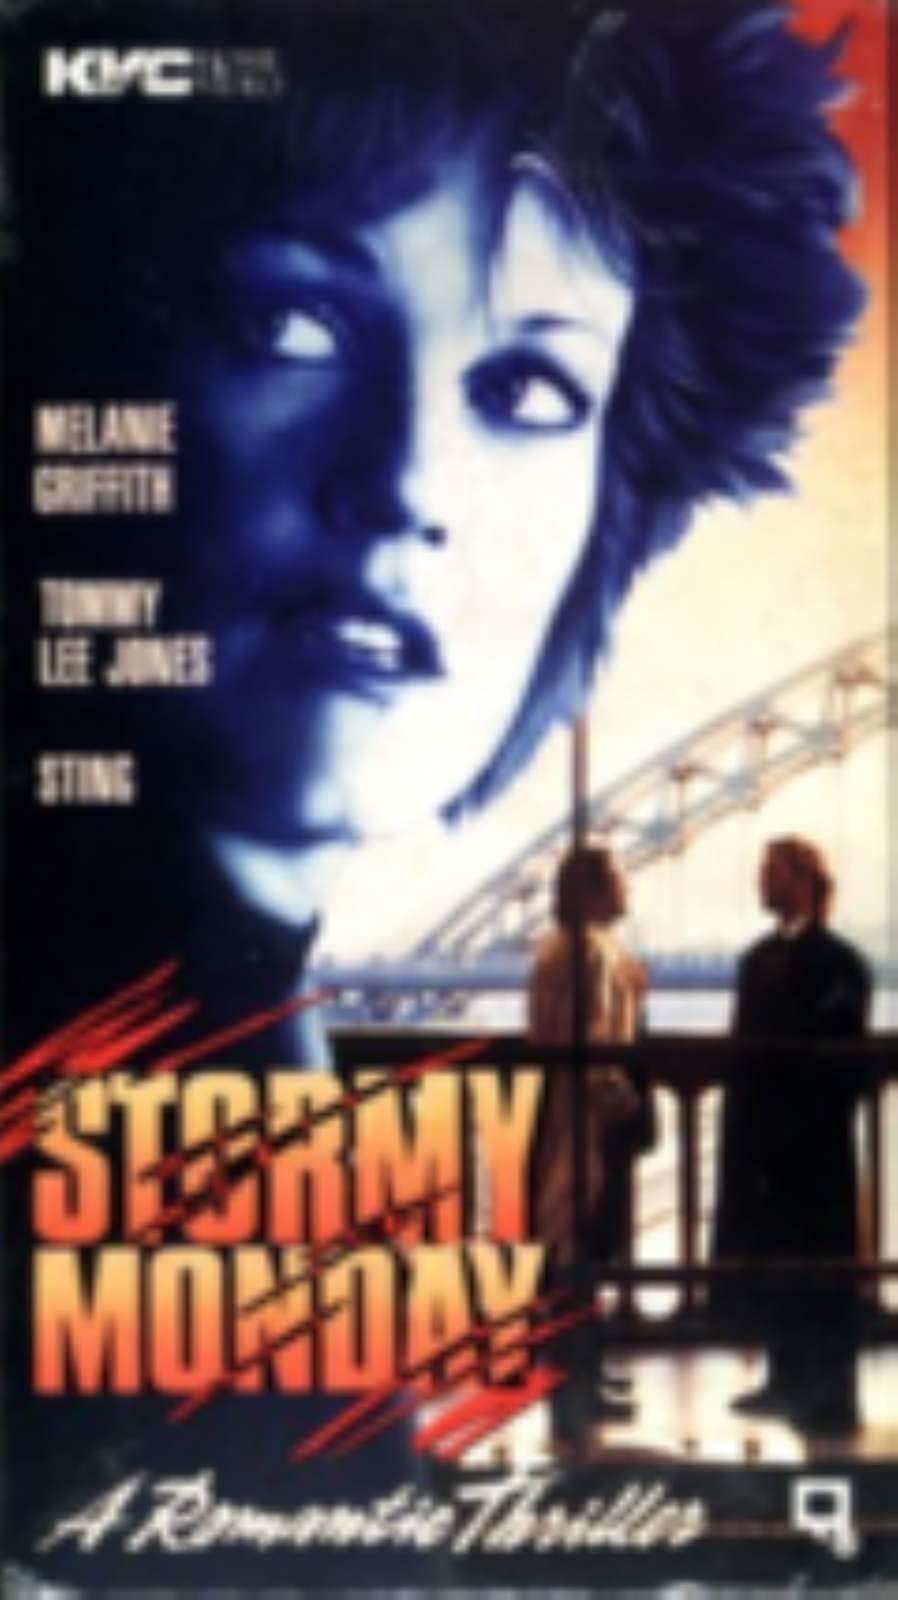 Stormy Monday Vhs